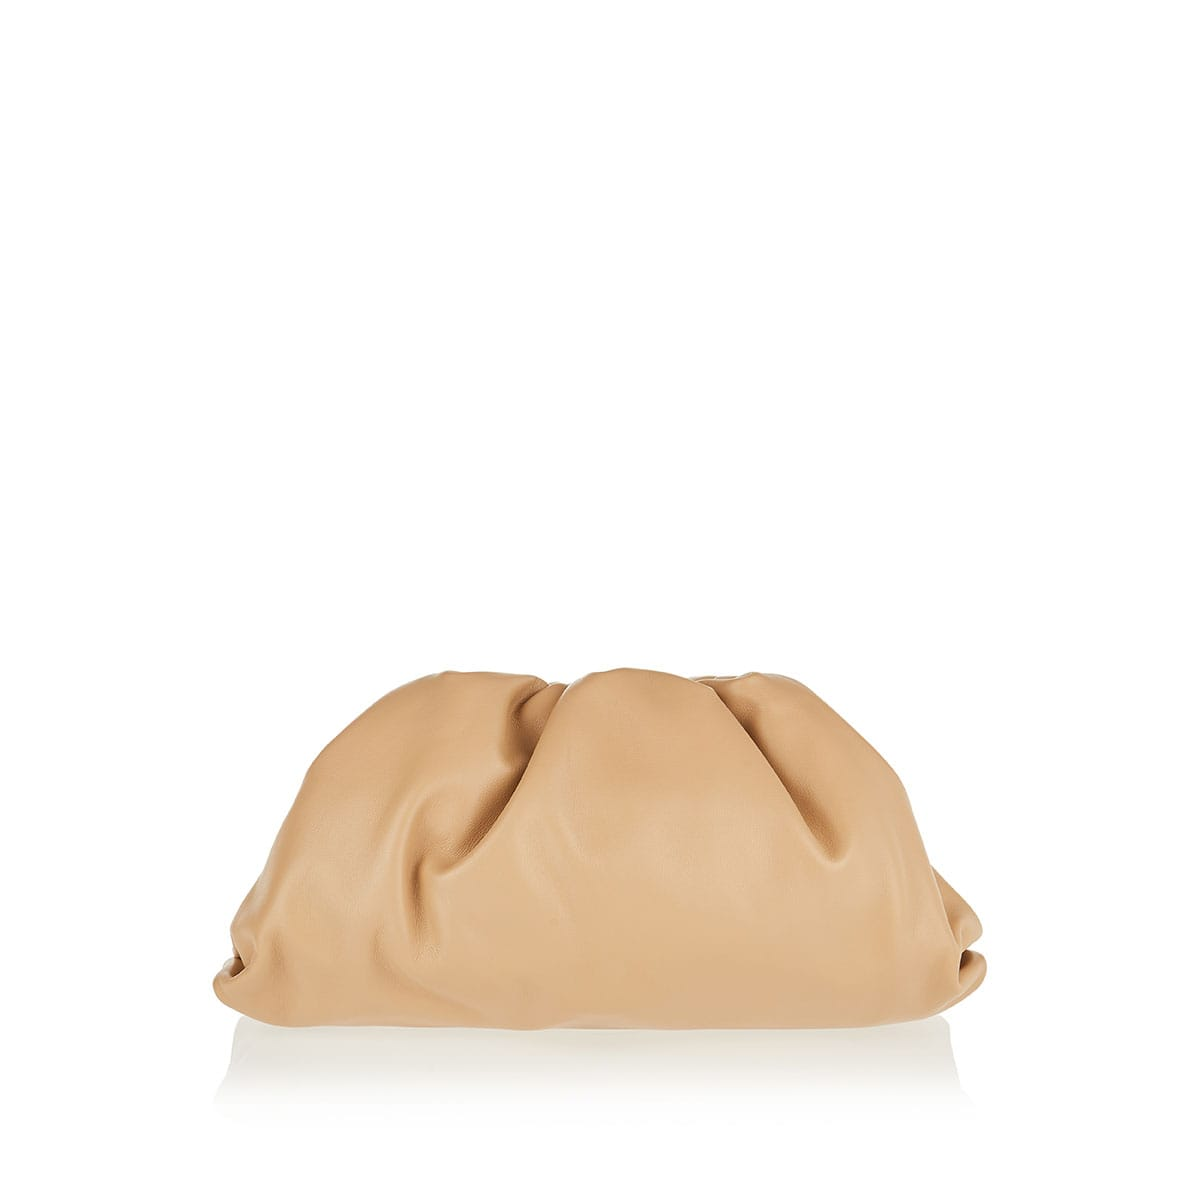 The Pouch large leather clutch